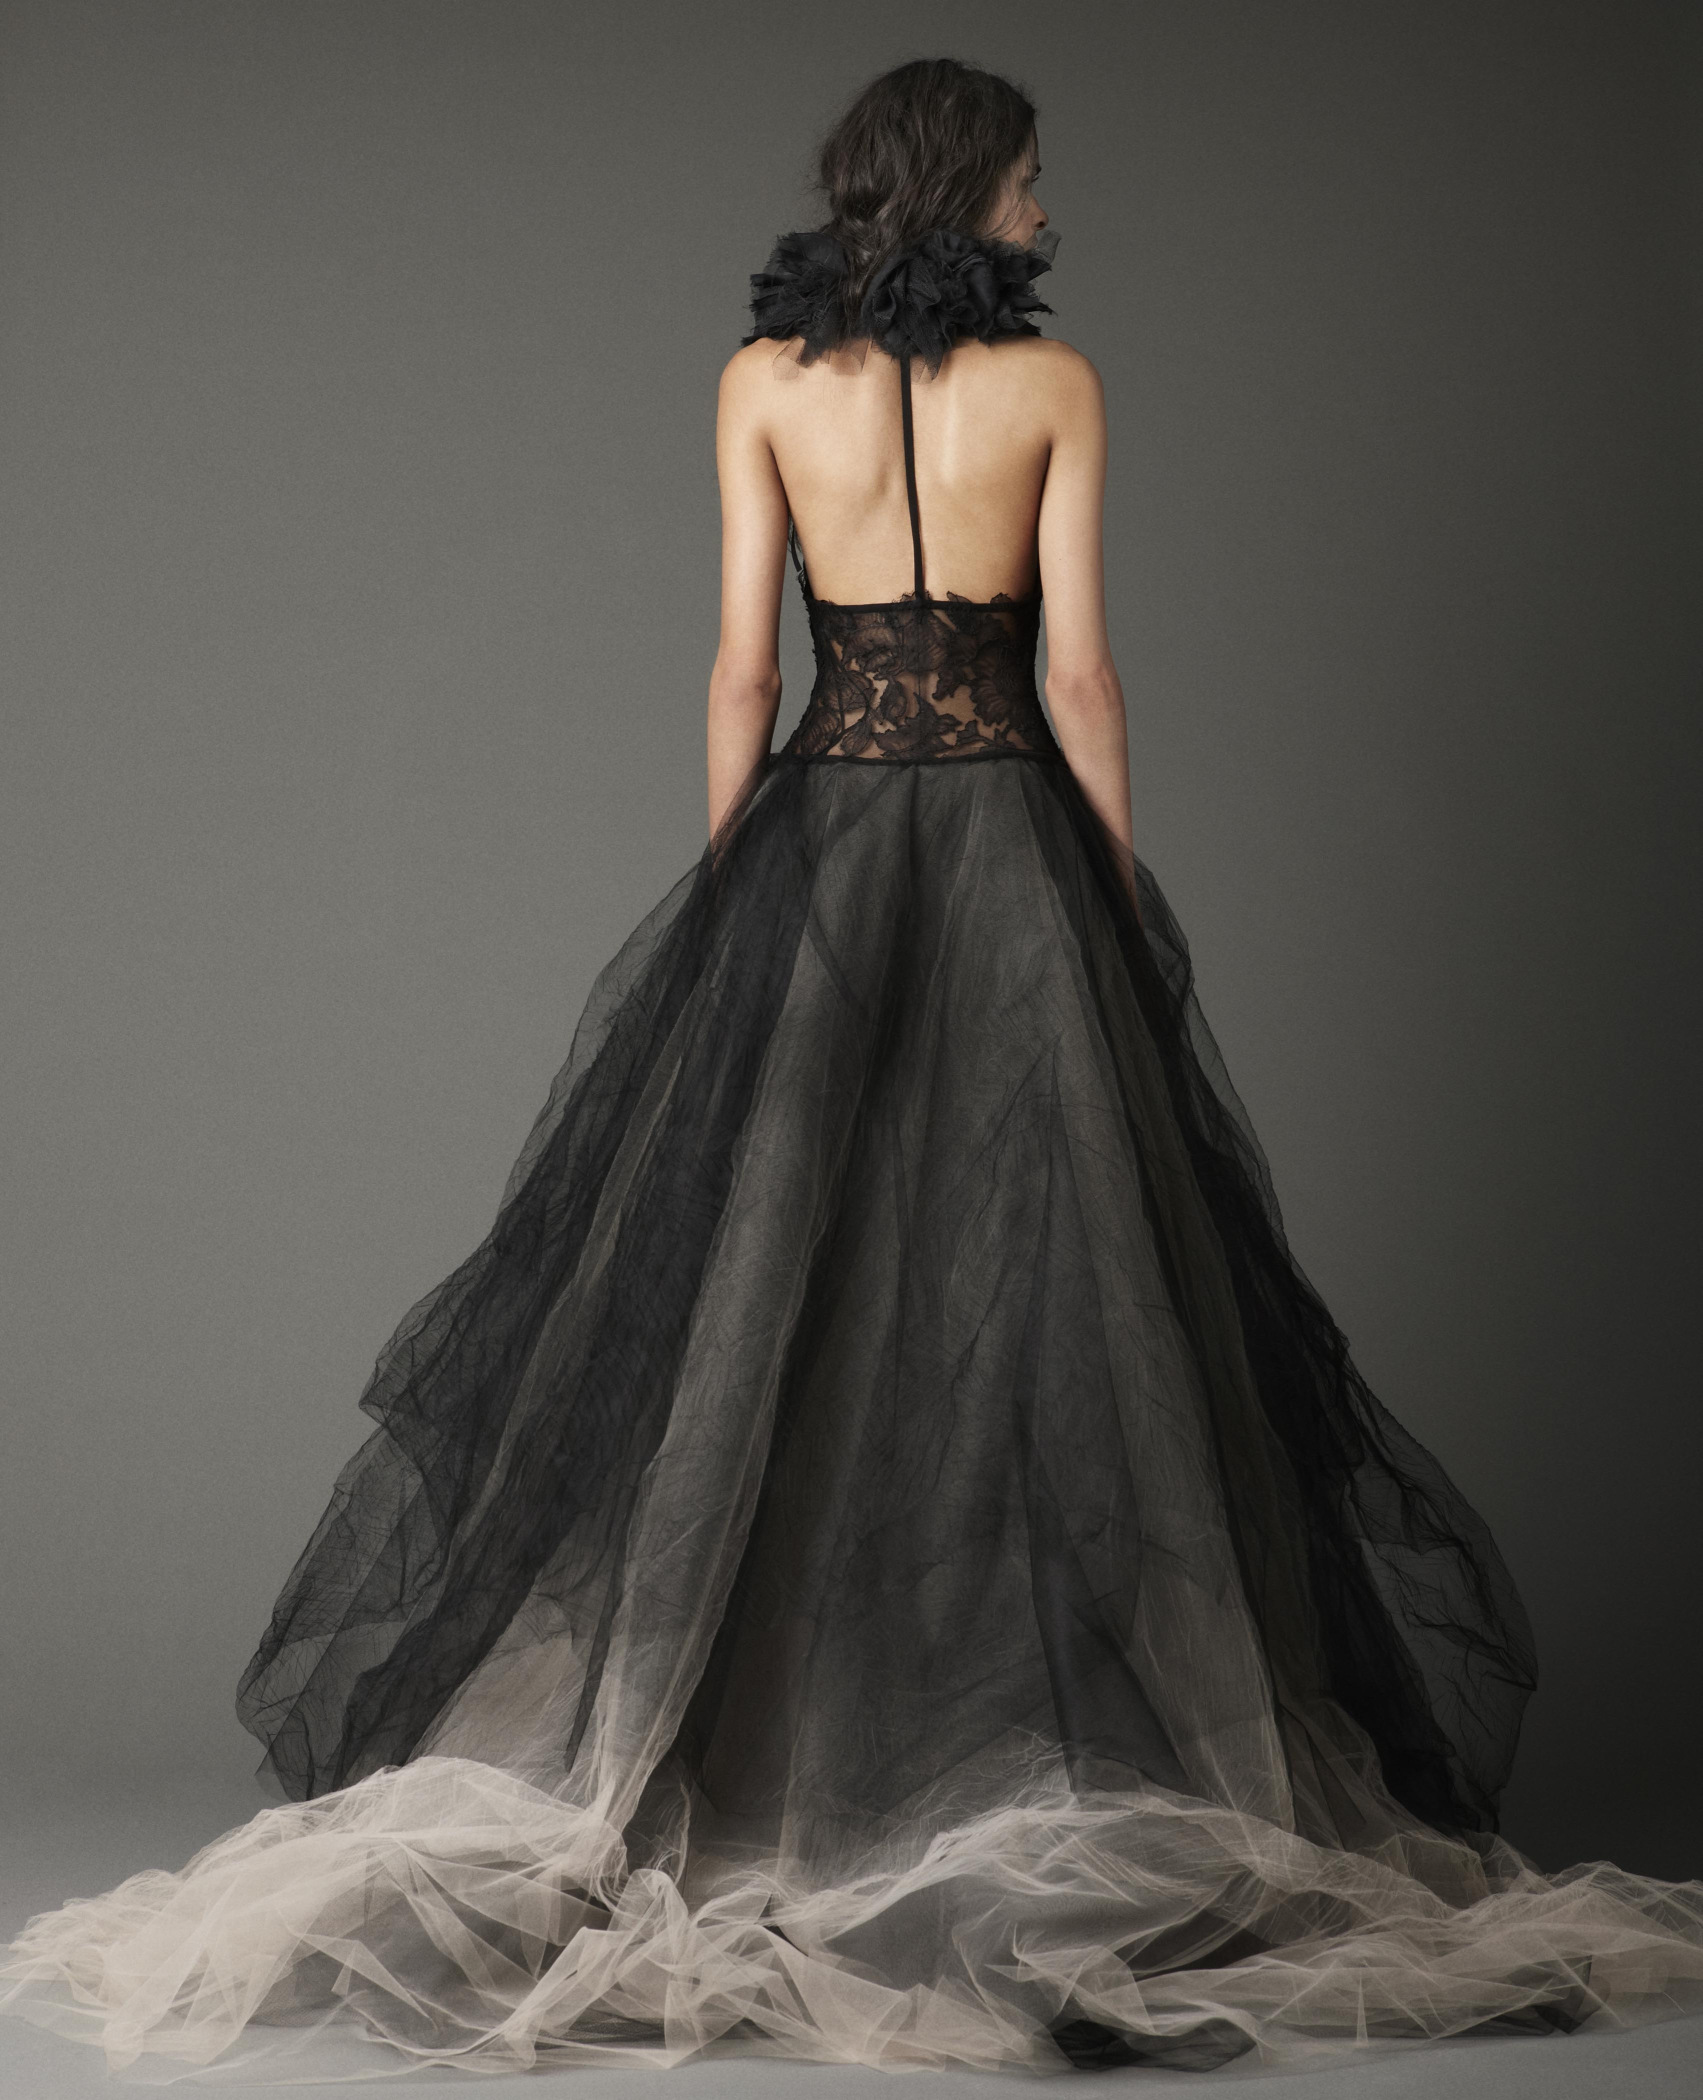 An au nce with Vera Wang it's all about the dress